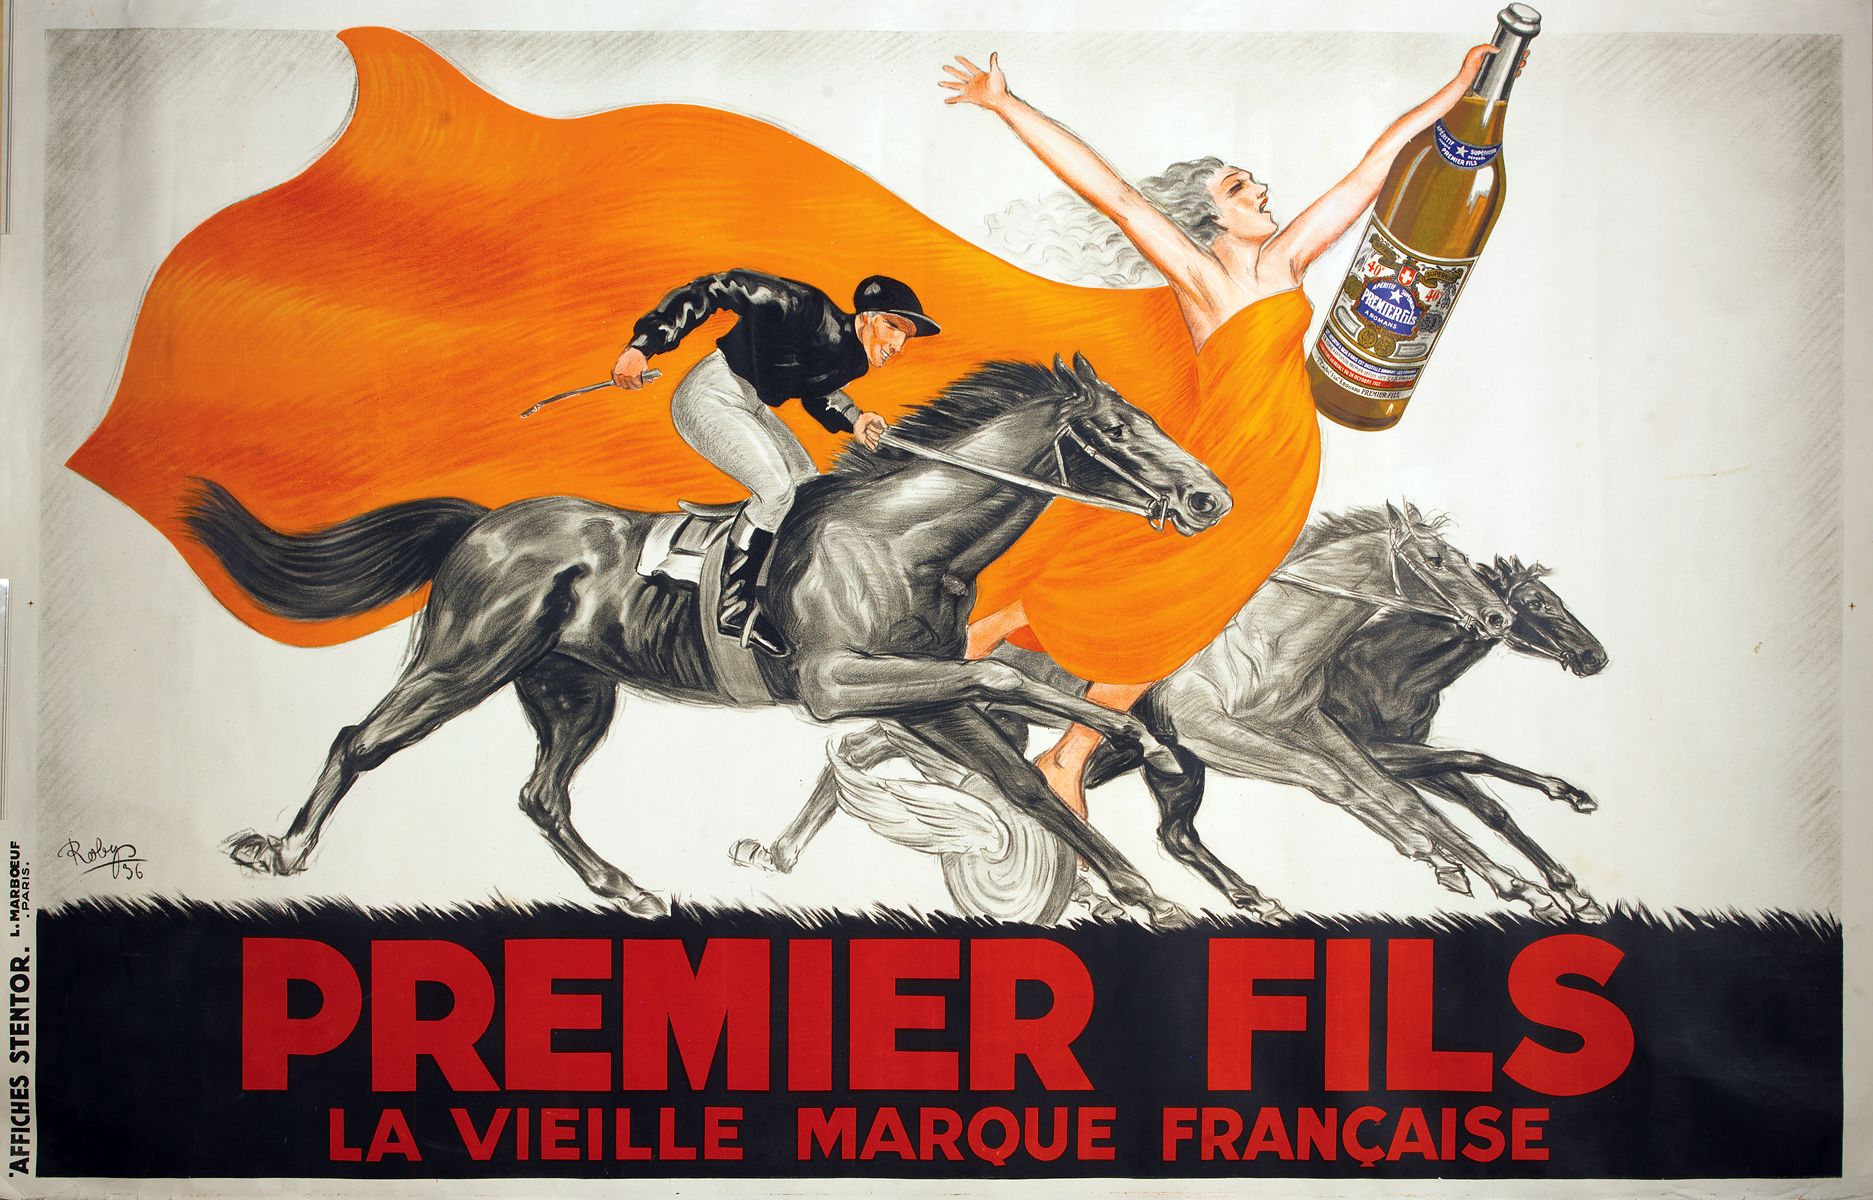 Premier Fils, Beverage Poster (c. 1936) by Robys (Robert Wolff). Park West Gallery Collection.